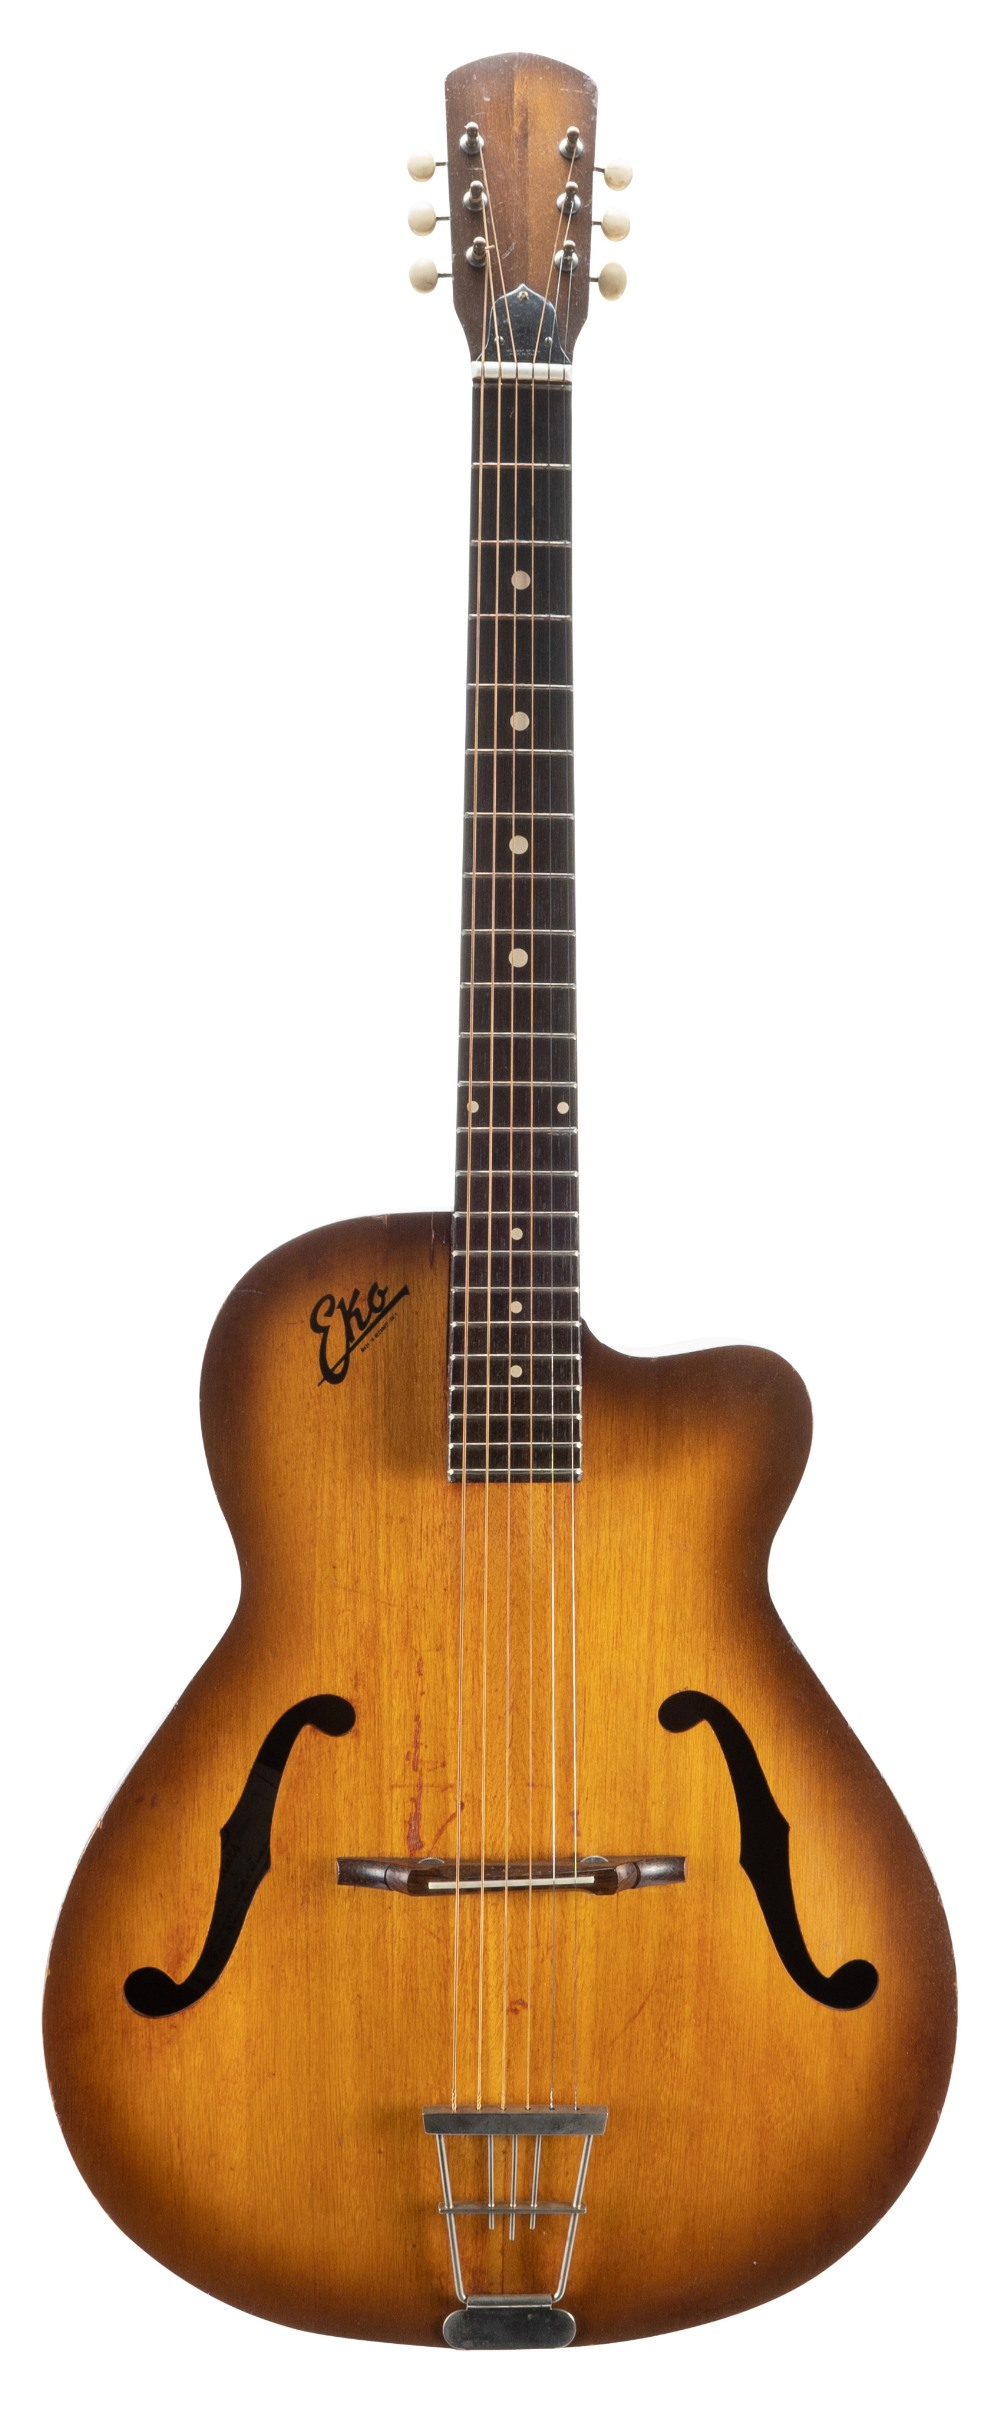 1963 Eko 100 hollow body guitar; Finish: tobacco burst, various imperfections including minor